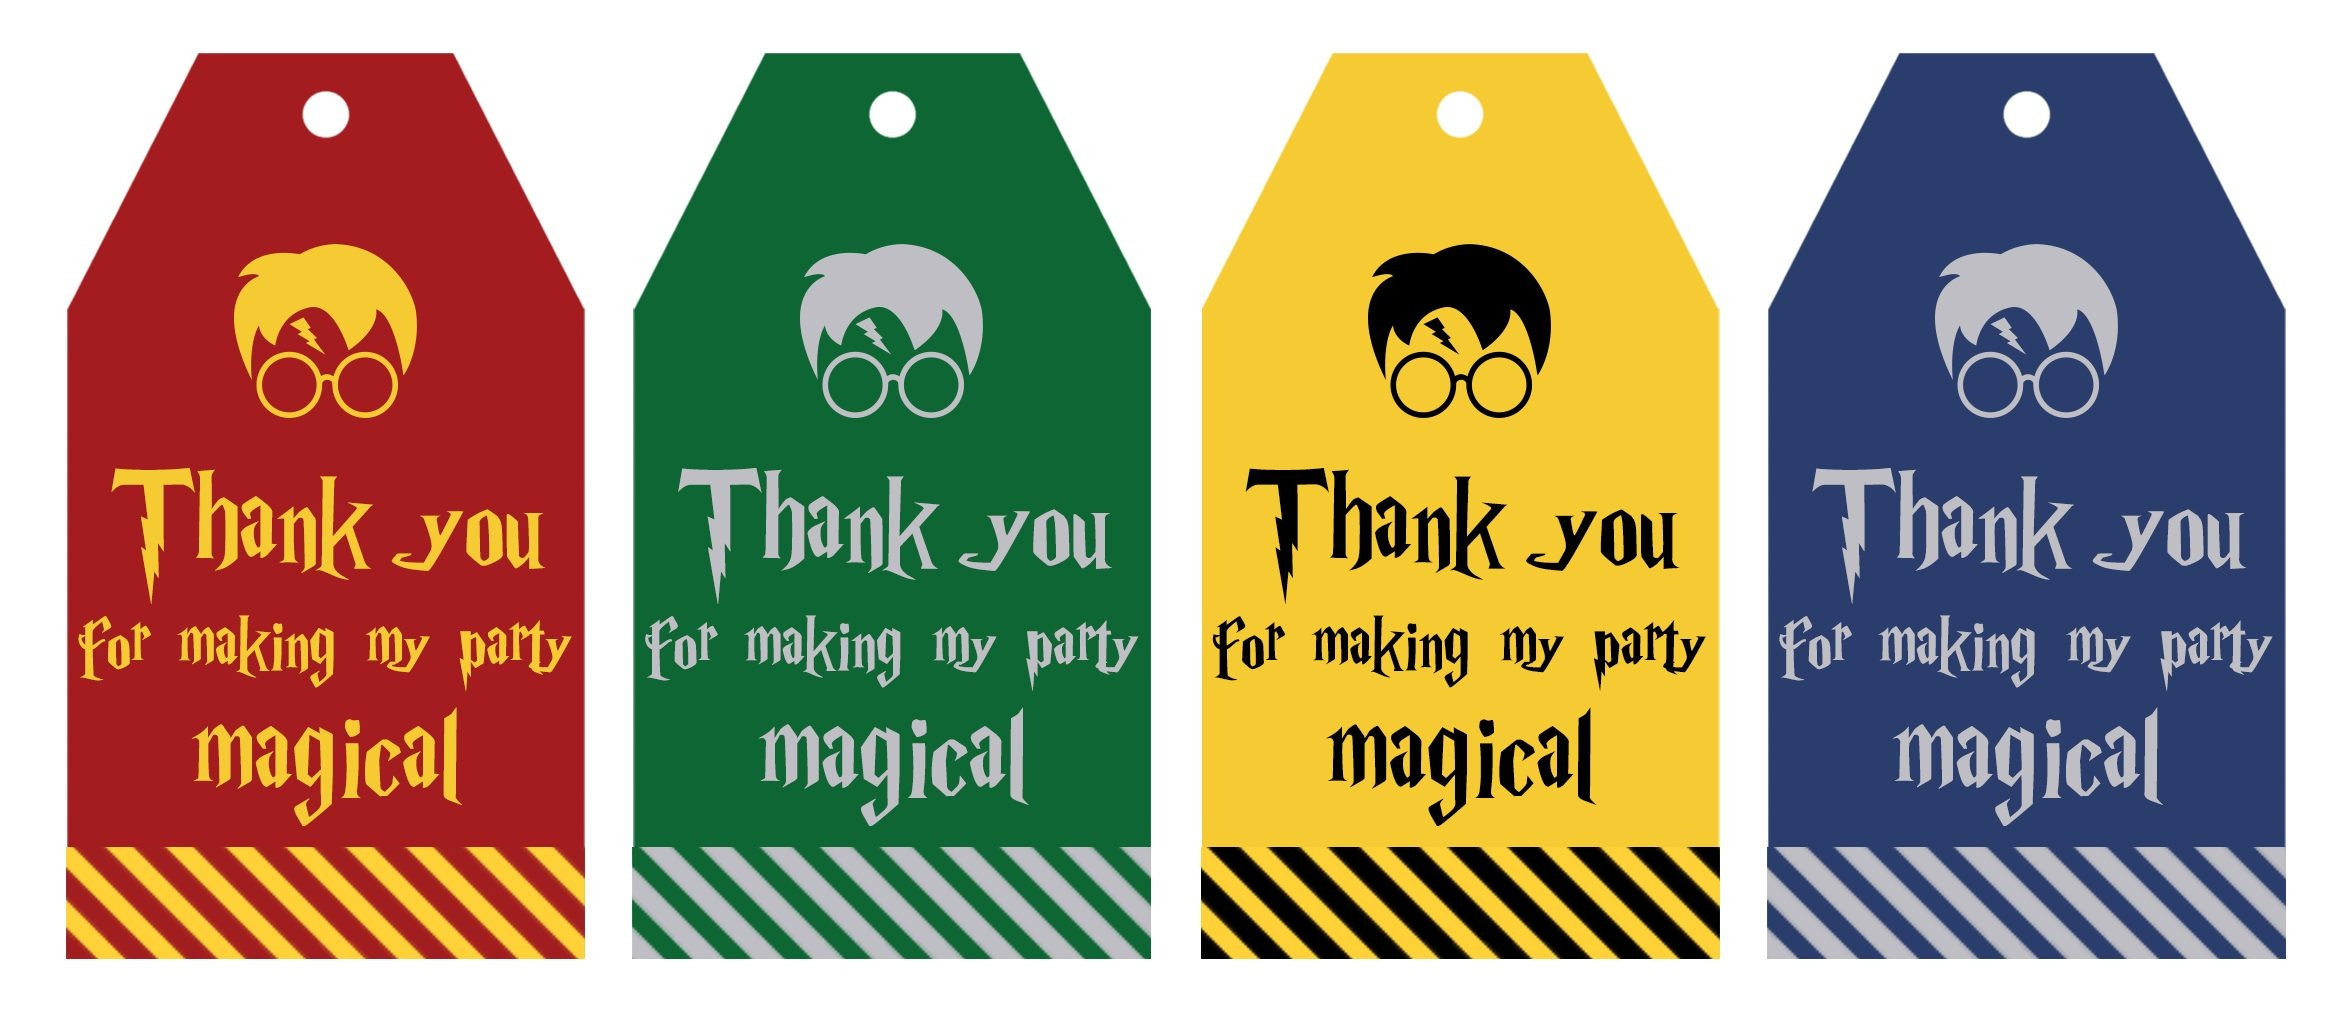 Free Printable Harry Potter Party Favor Gift Tags - Lovely Planner - Free Printable Gift Bag Tags